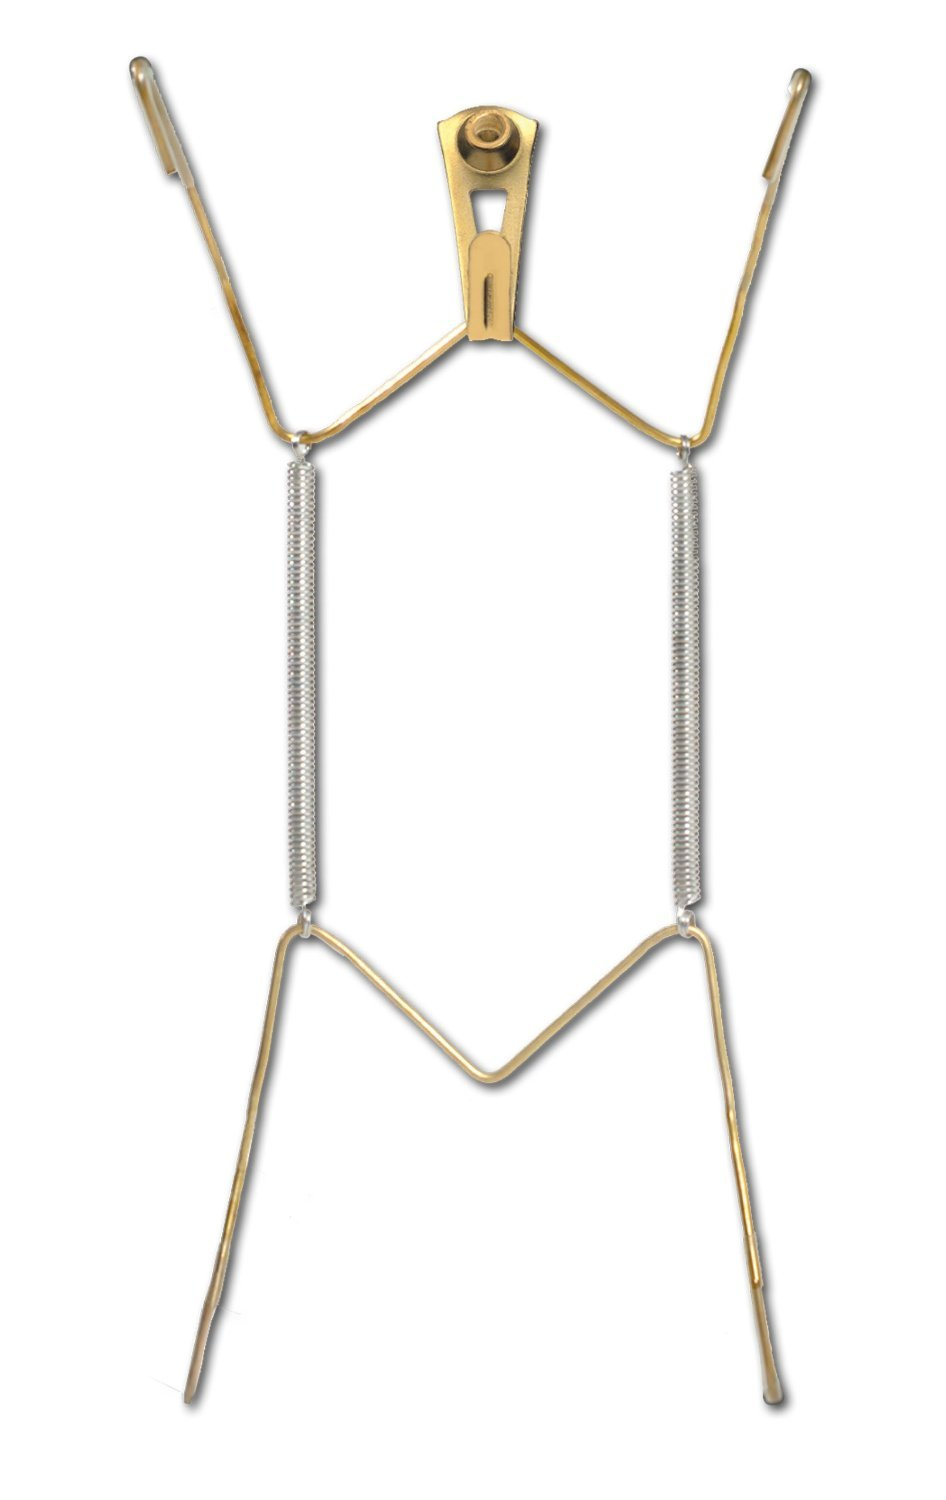 OOK 50471 Deluxe Plate Hanger with Steel Pro Supports Up to 30 Pounds, 7-Inch to 10-Inch 3 PACK